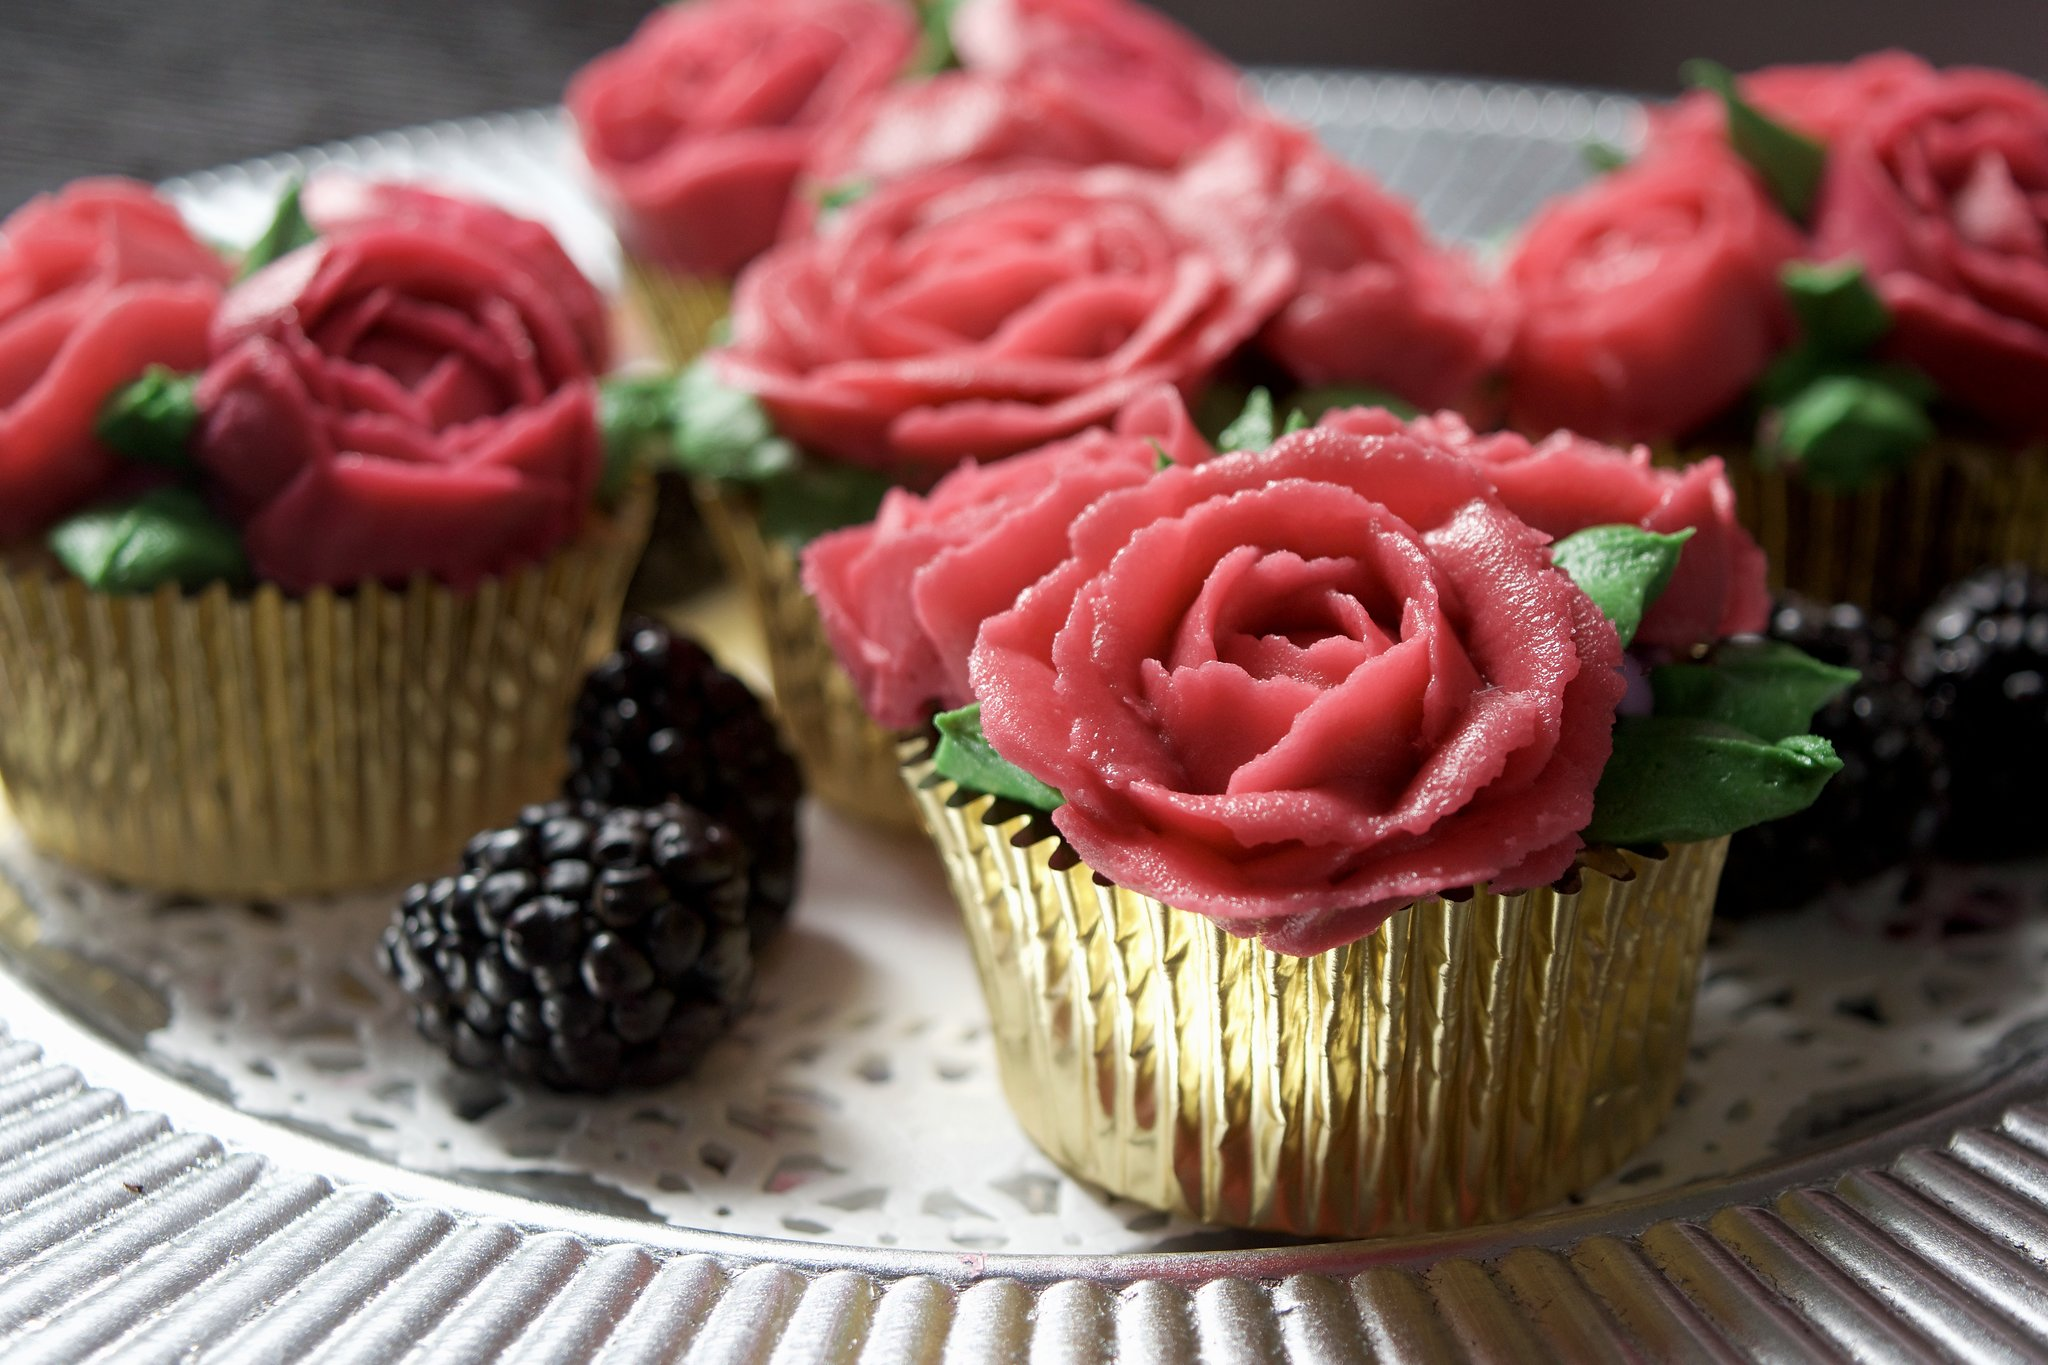 Custom Red Rose cupcakes